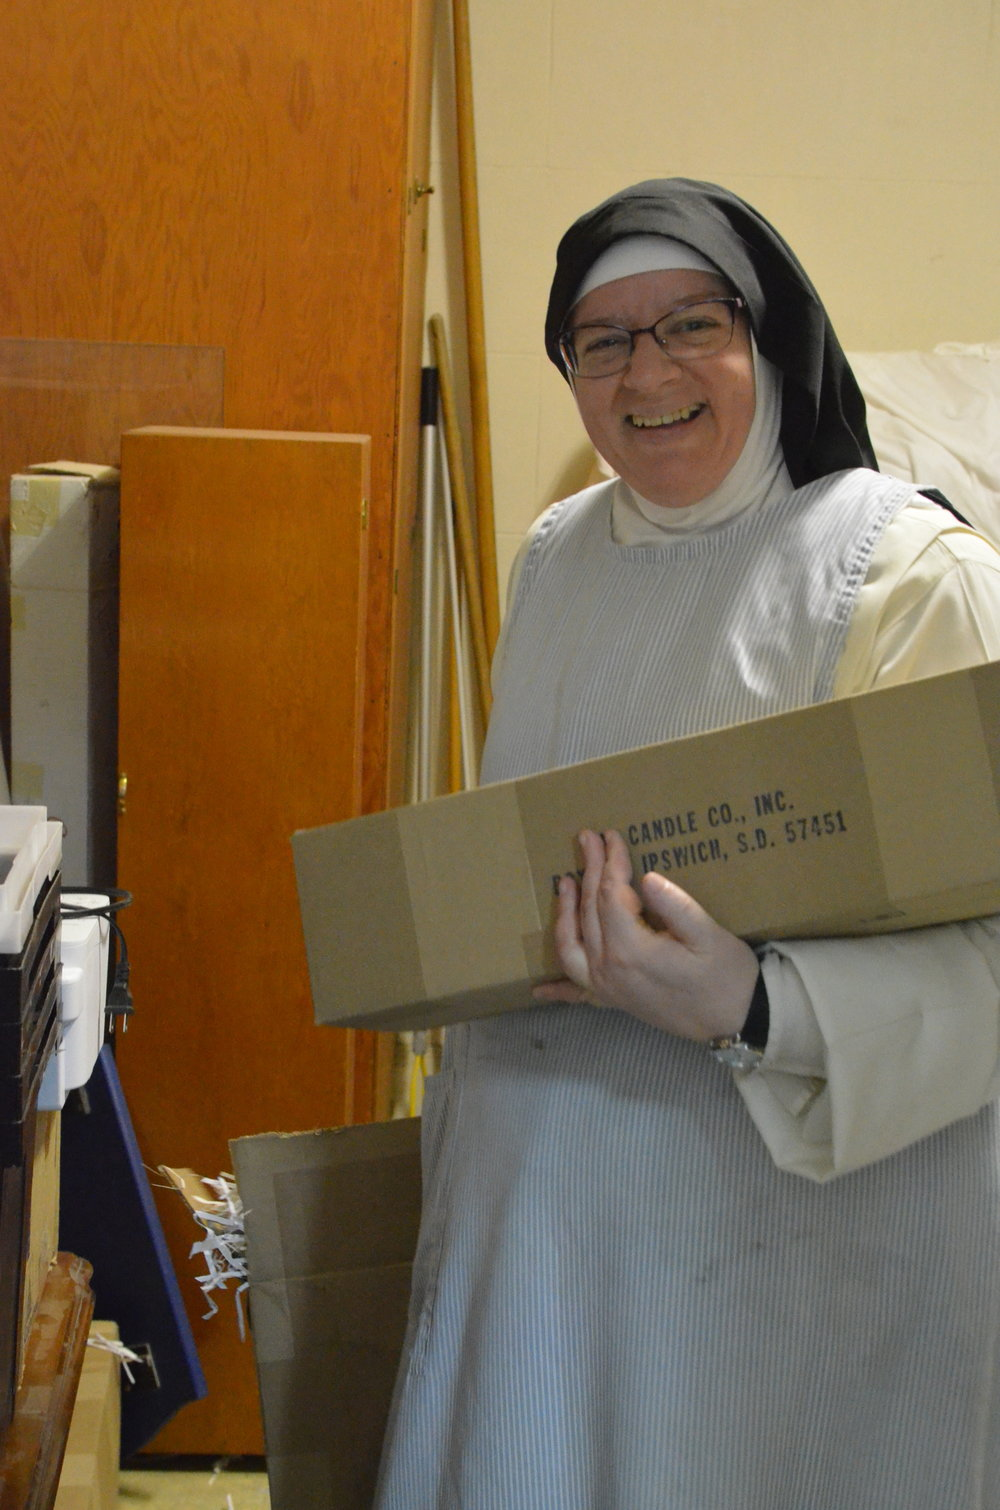 Sr. Judith Miryam, the sacristan, bringing up candles from the sacristy store room